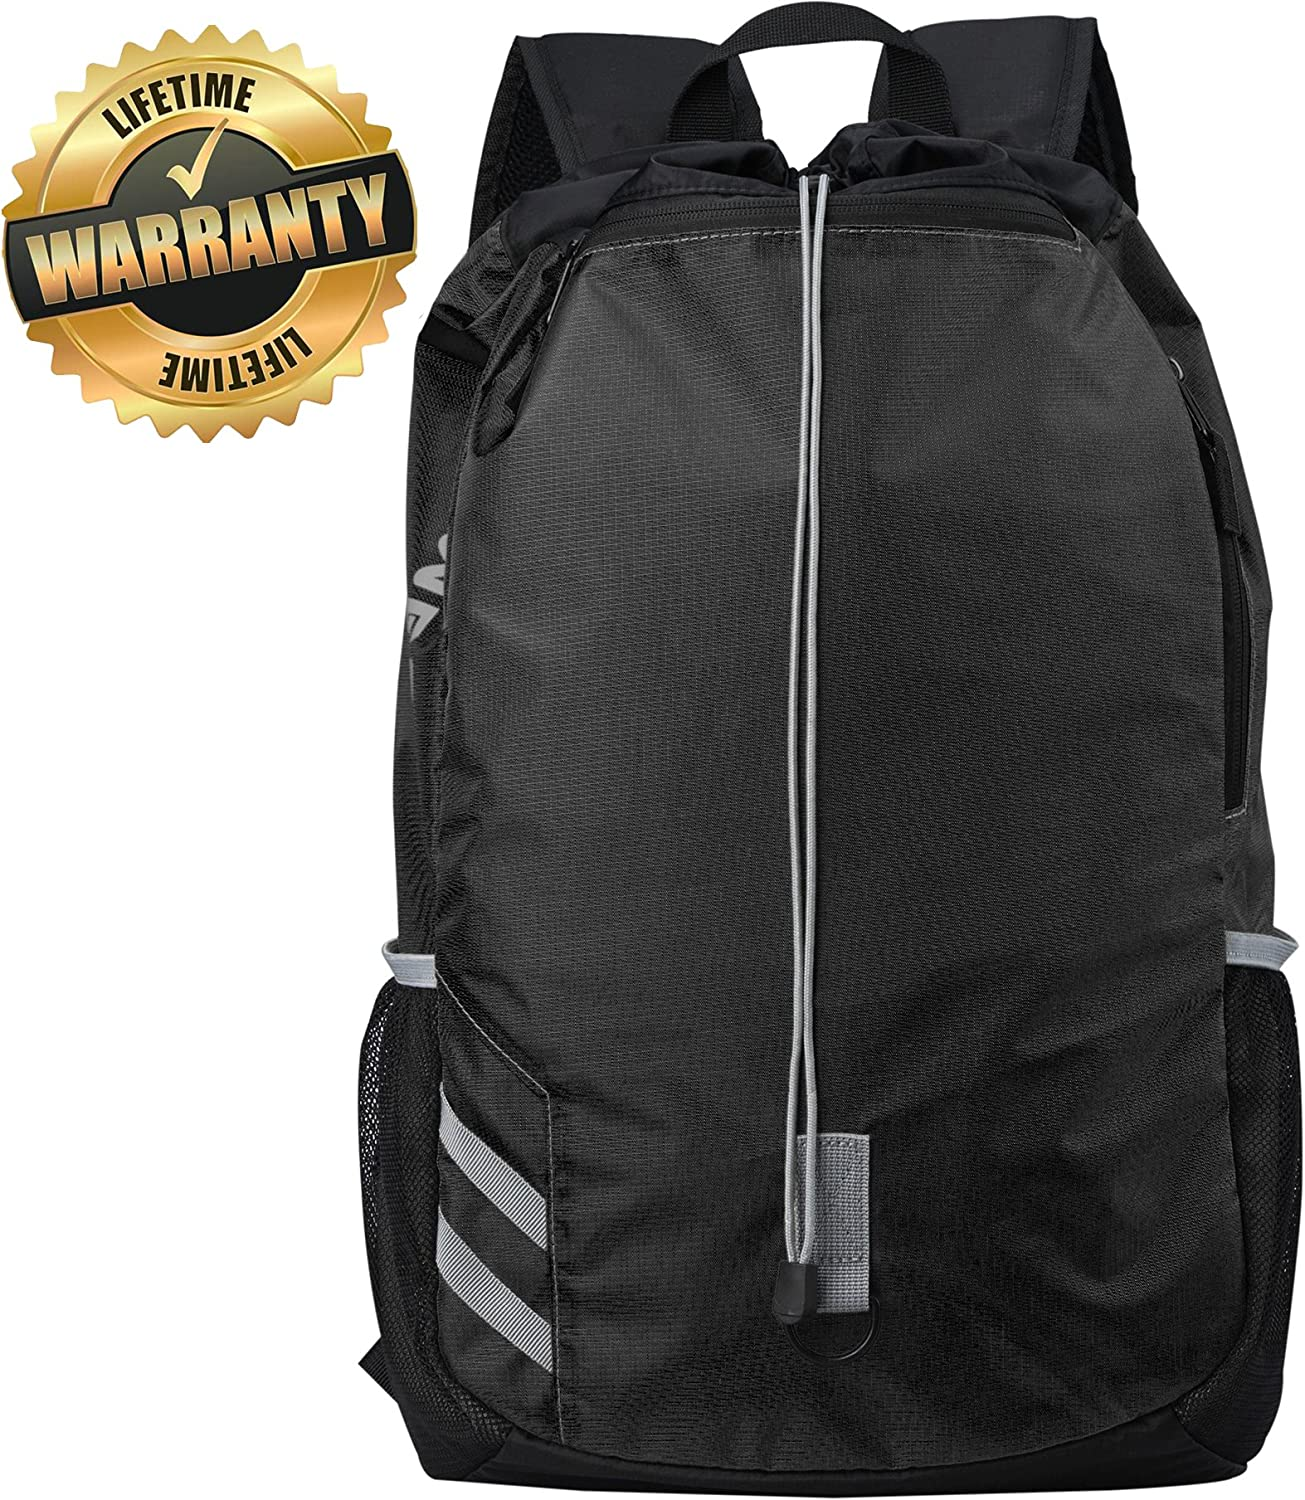 #1 Top Recommended Backpack - Lightweight Drawsting Backpack - Best for Sports, Gym, Travel, Hiking&School 91zOPOYHQIL